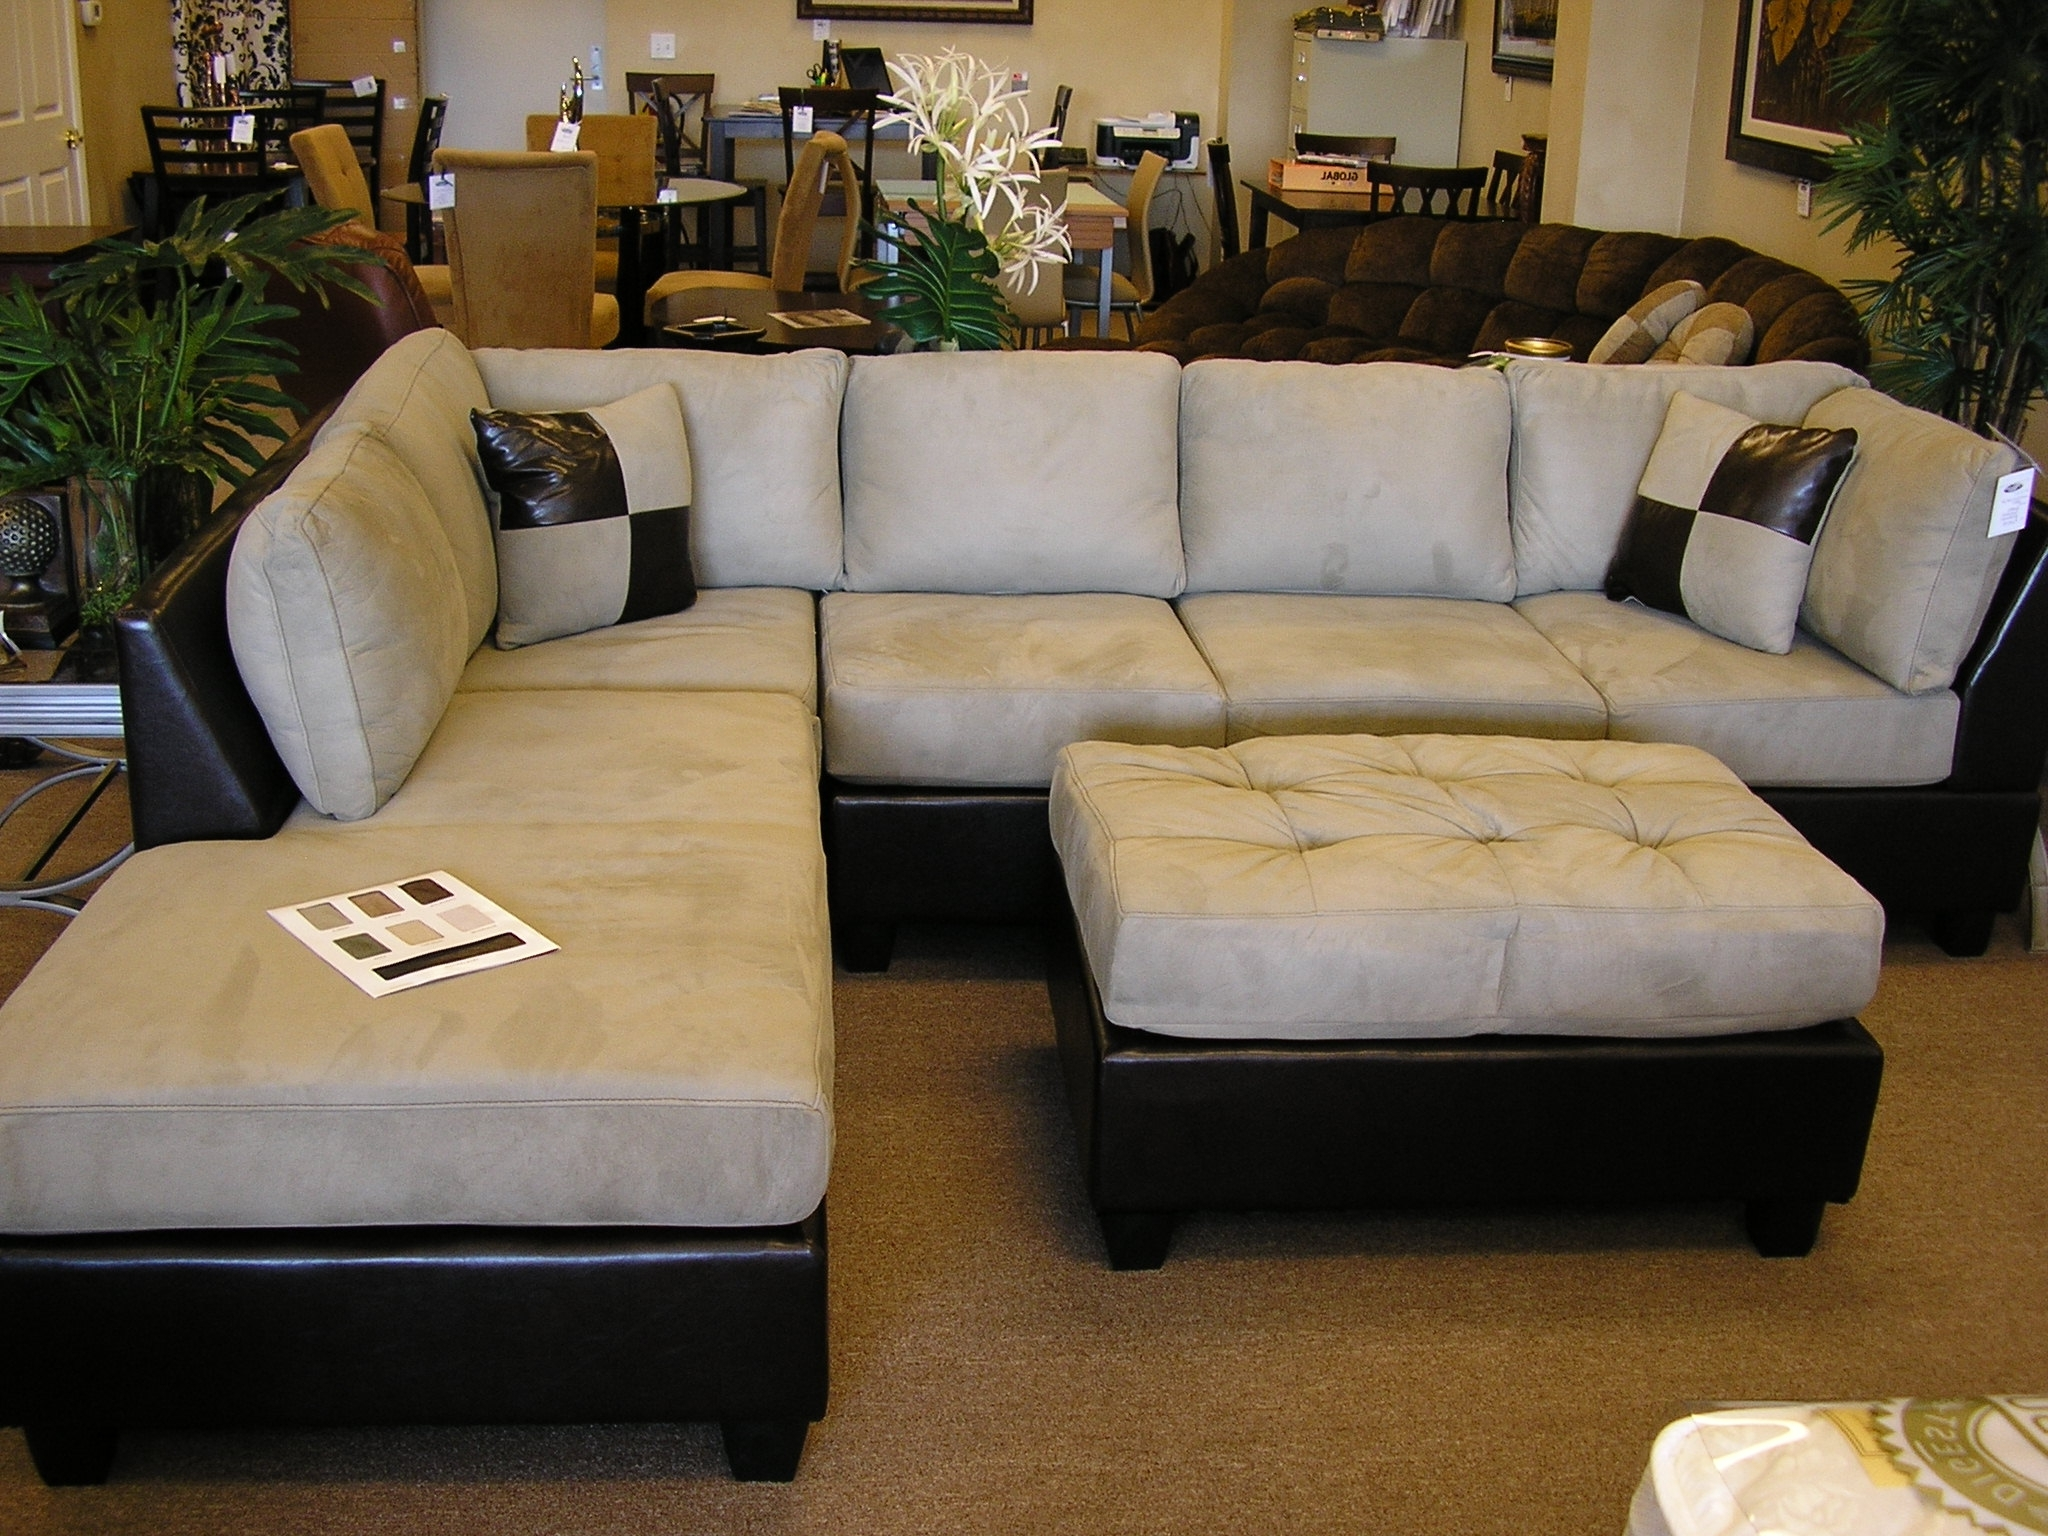 Furniture : Sectional Chaise Lounge Sofa Double Along With Pertaining To Newest Long Chaise Sofas (View 6 of 20)